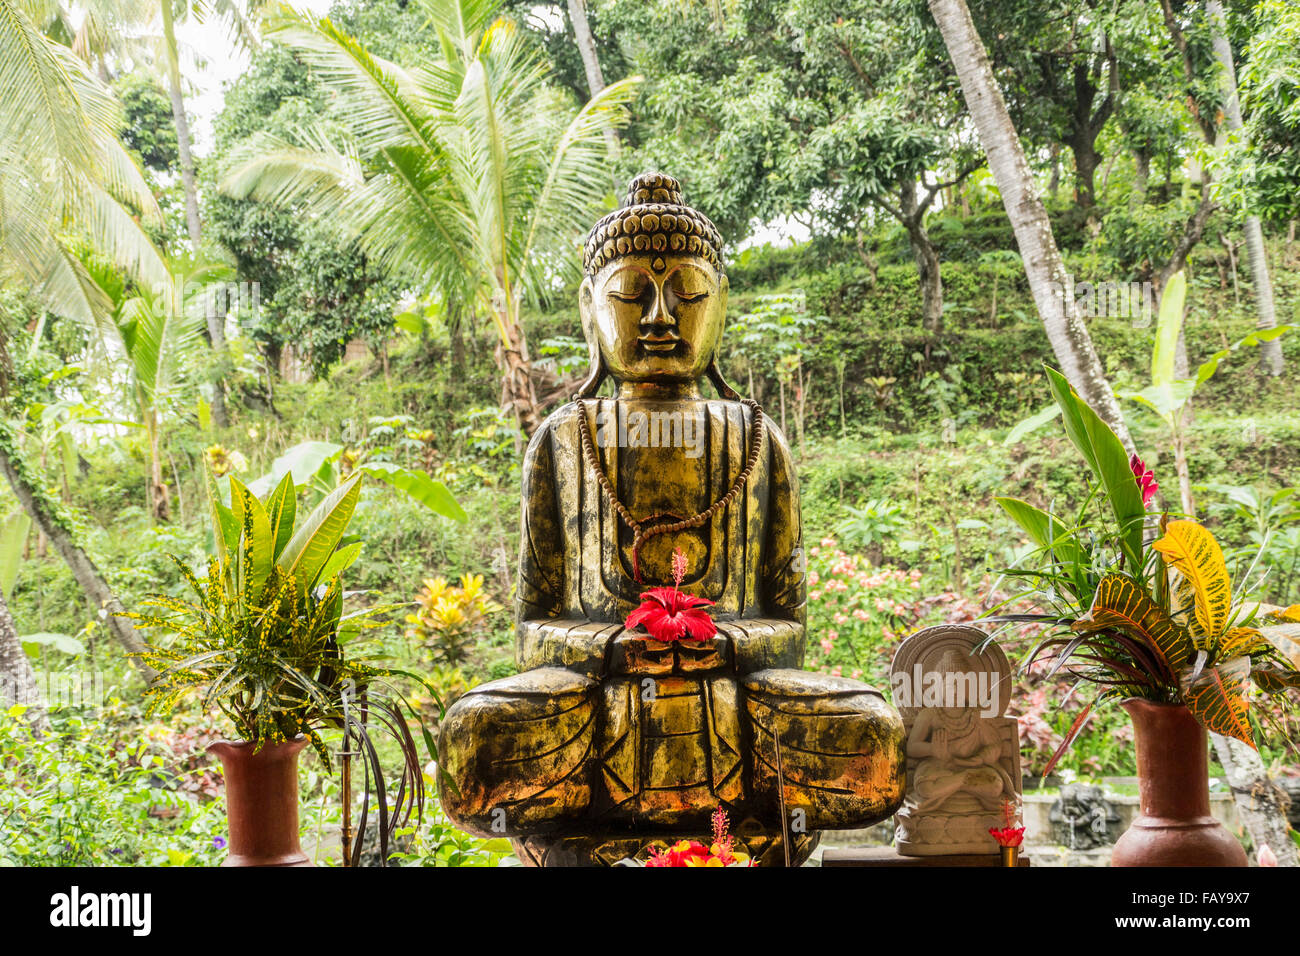 Indonesia, Tejakula, Bali, Hibiscus Flower on Buddha statue - Stock Image